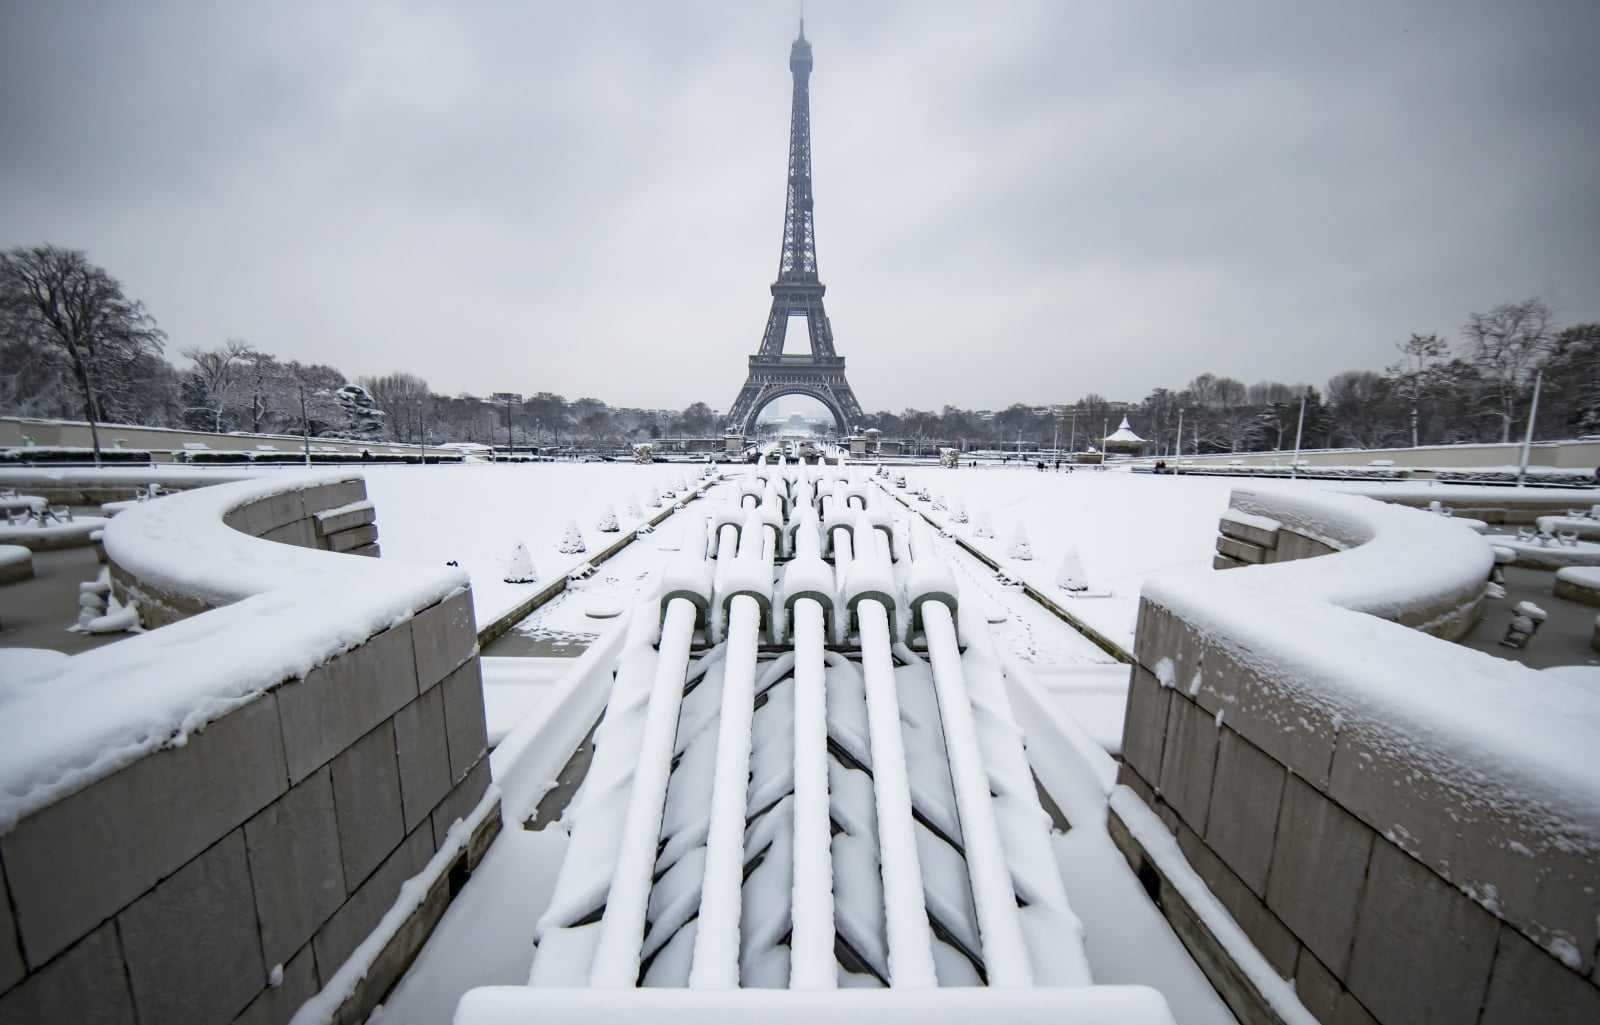 epa06502929 A view of the snow-covered Trocadero near the Eiffel Tower, in Paris, France, 07 February 2018. Temperatures dropped with snow flurries around the capital.  EPA/IAN LANGSDON Dostawca: PAP/EPA.